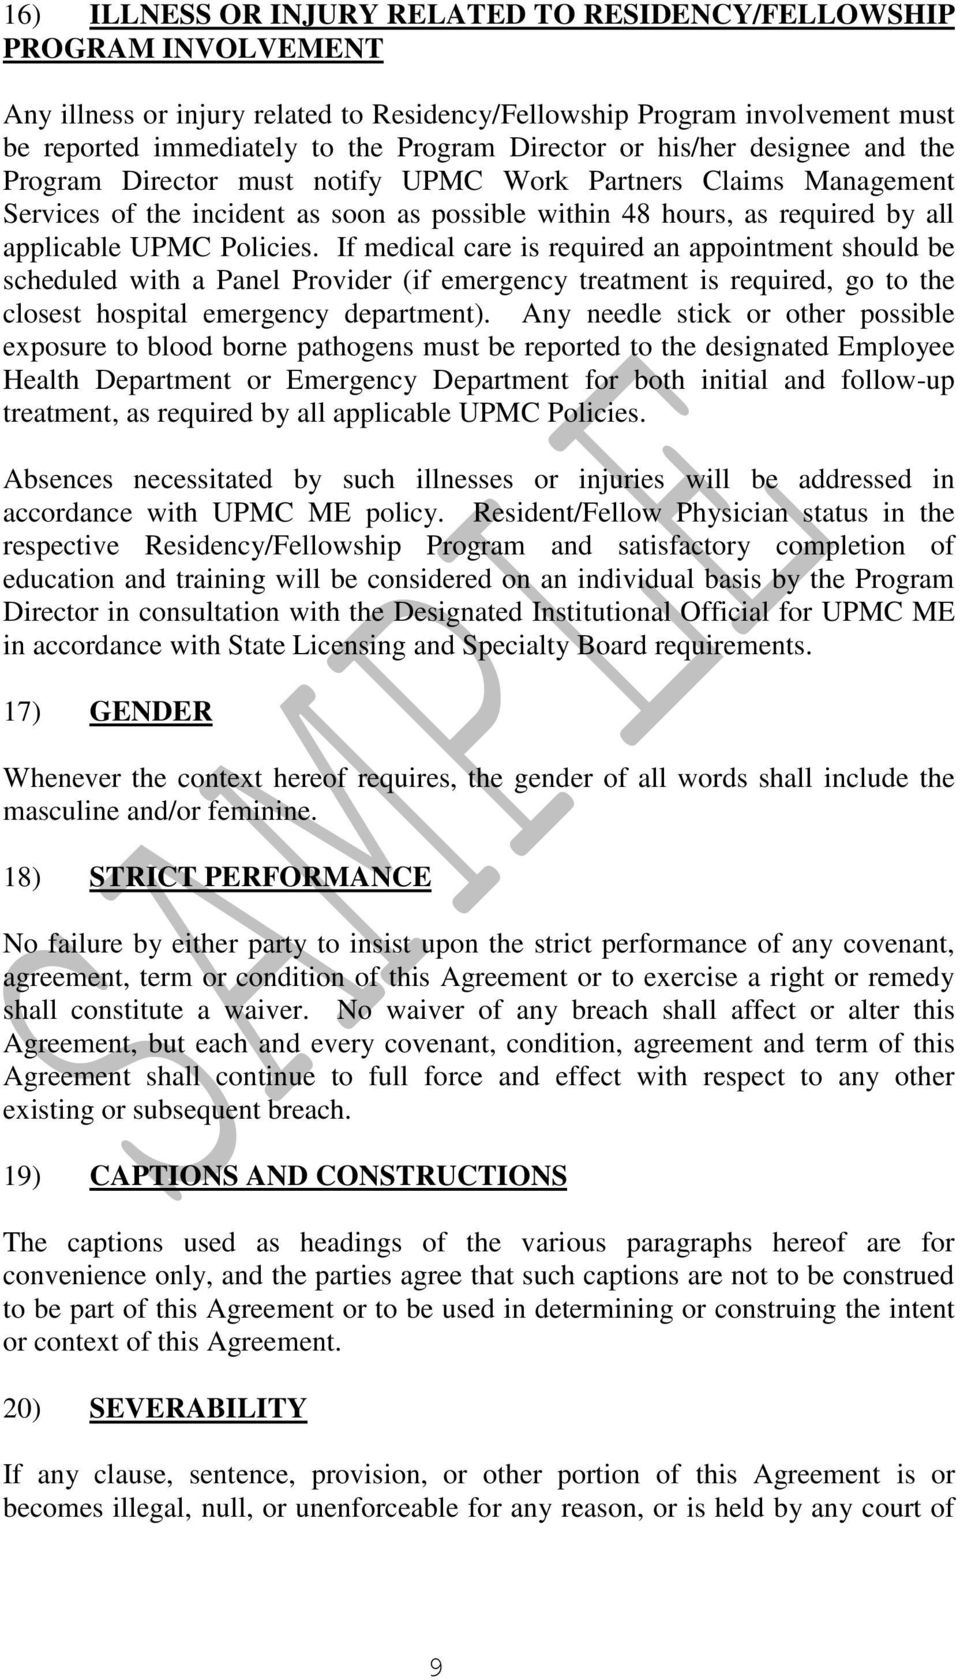 UPMC MEDICAL EDUCATION POSTGRADUATE TRAINING AGREEMENT - PDF